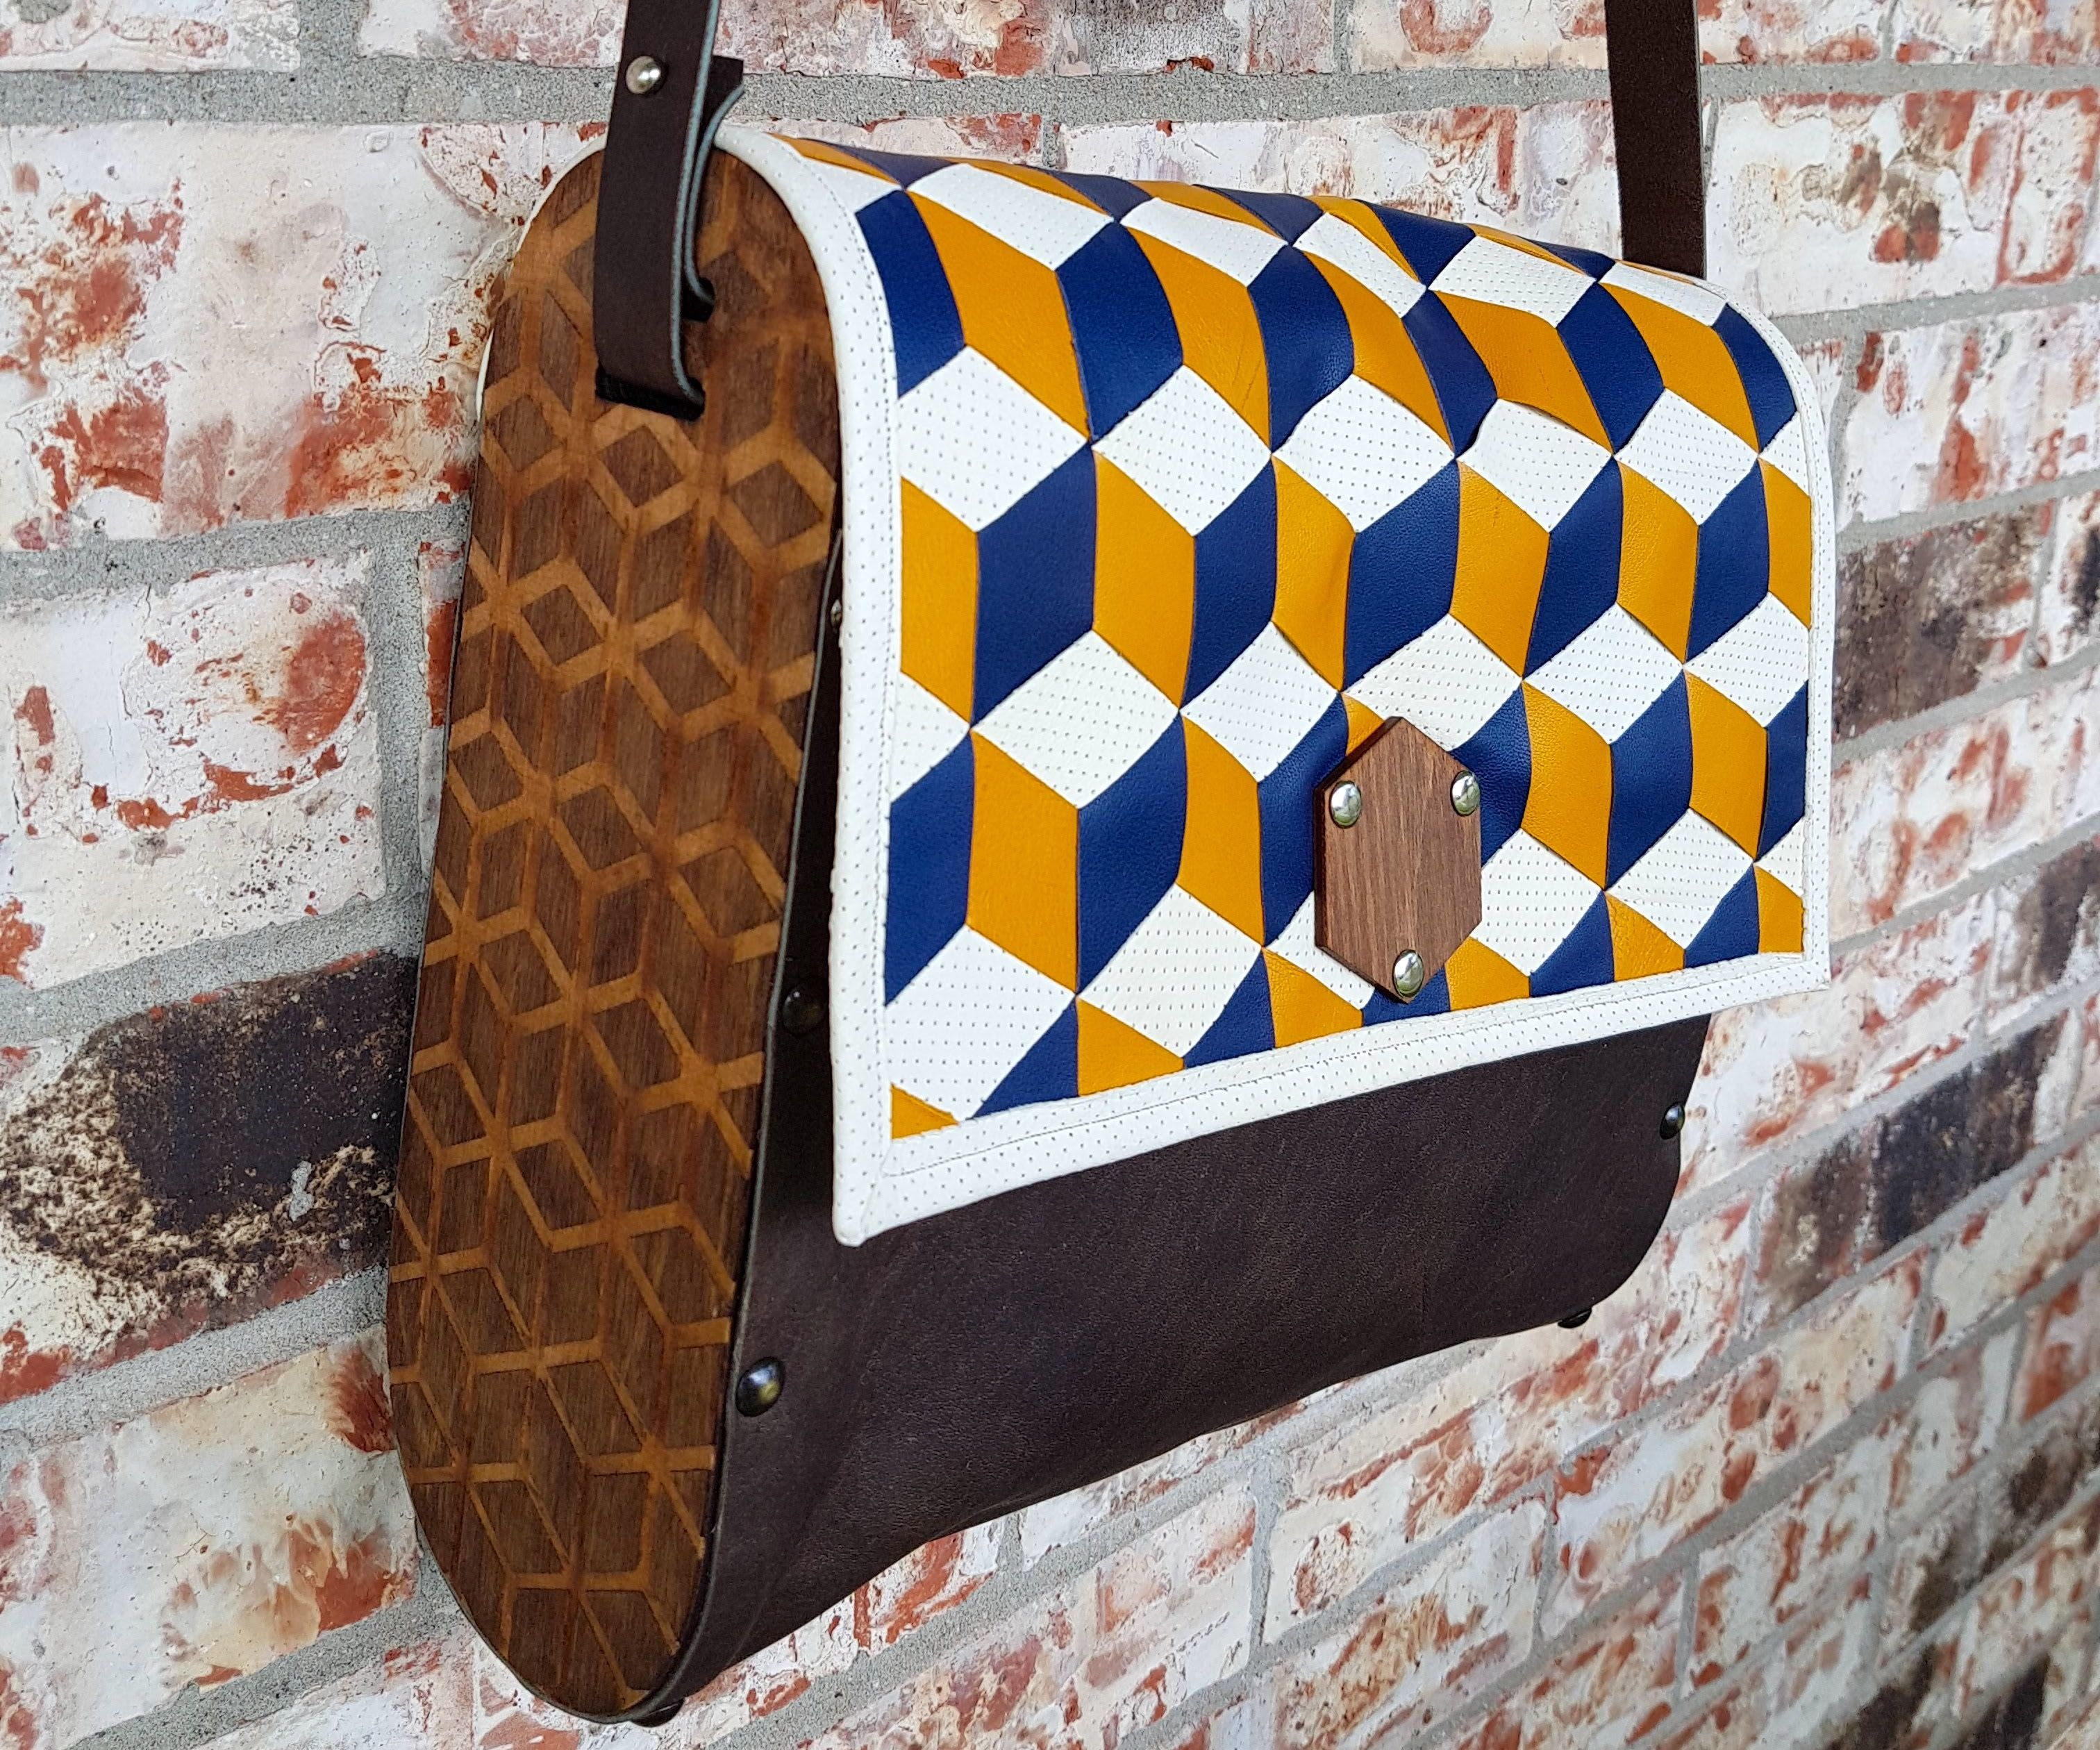 Woven Leather and Wood Bag